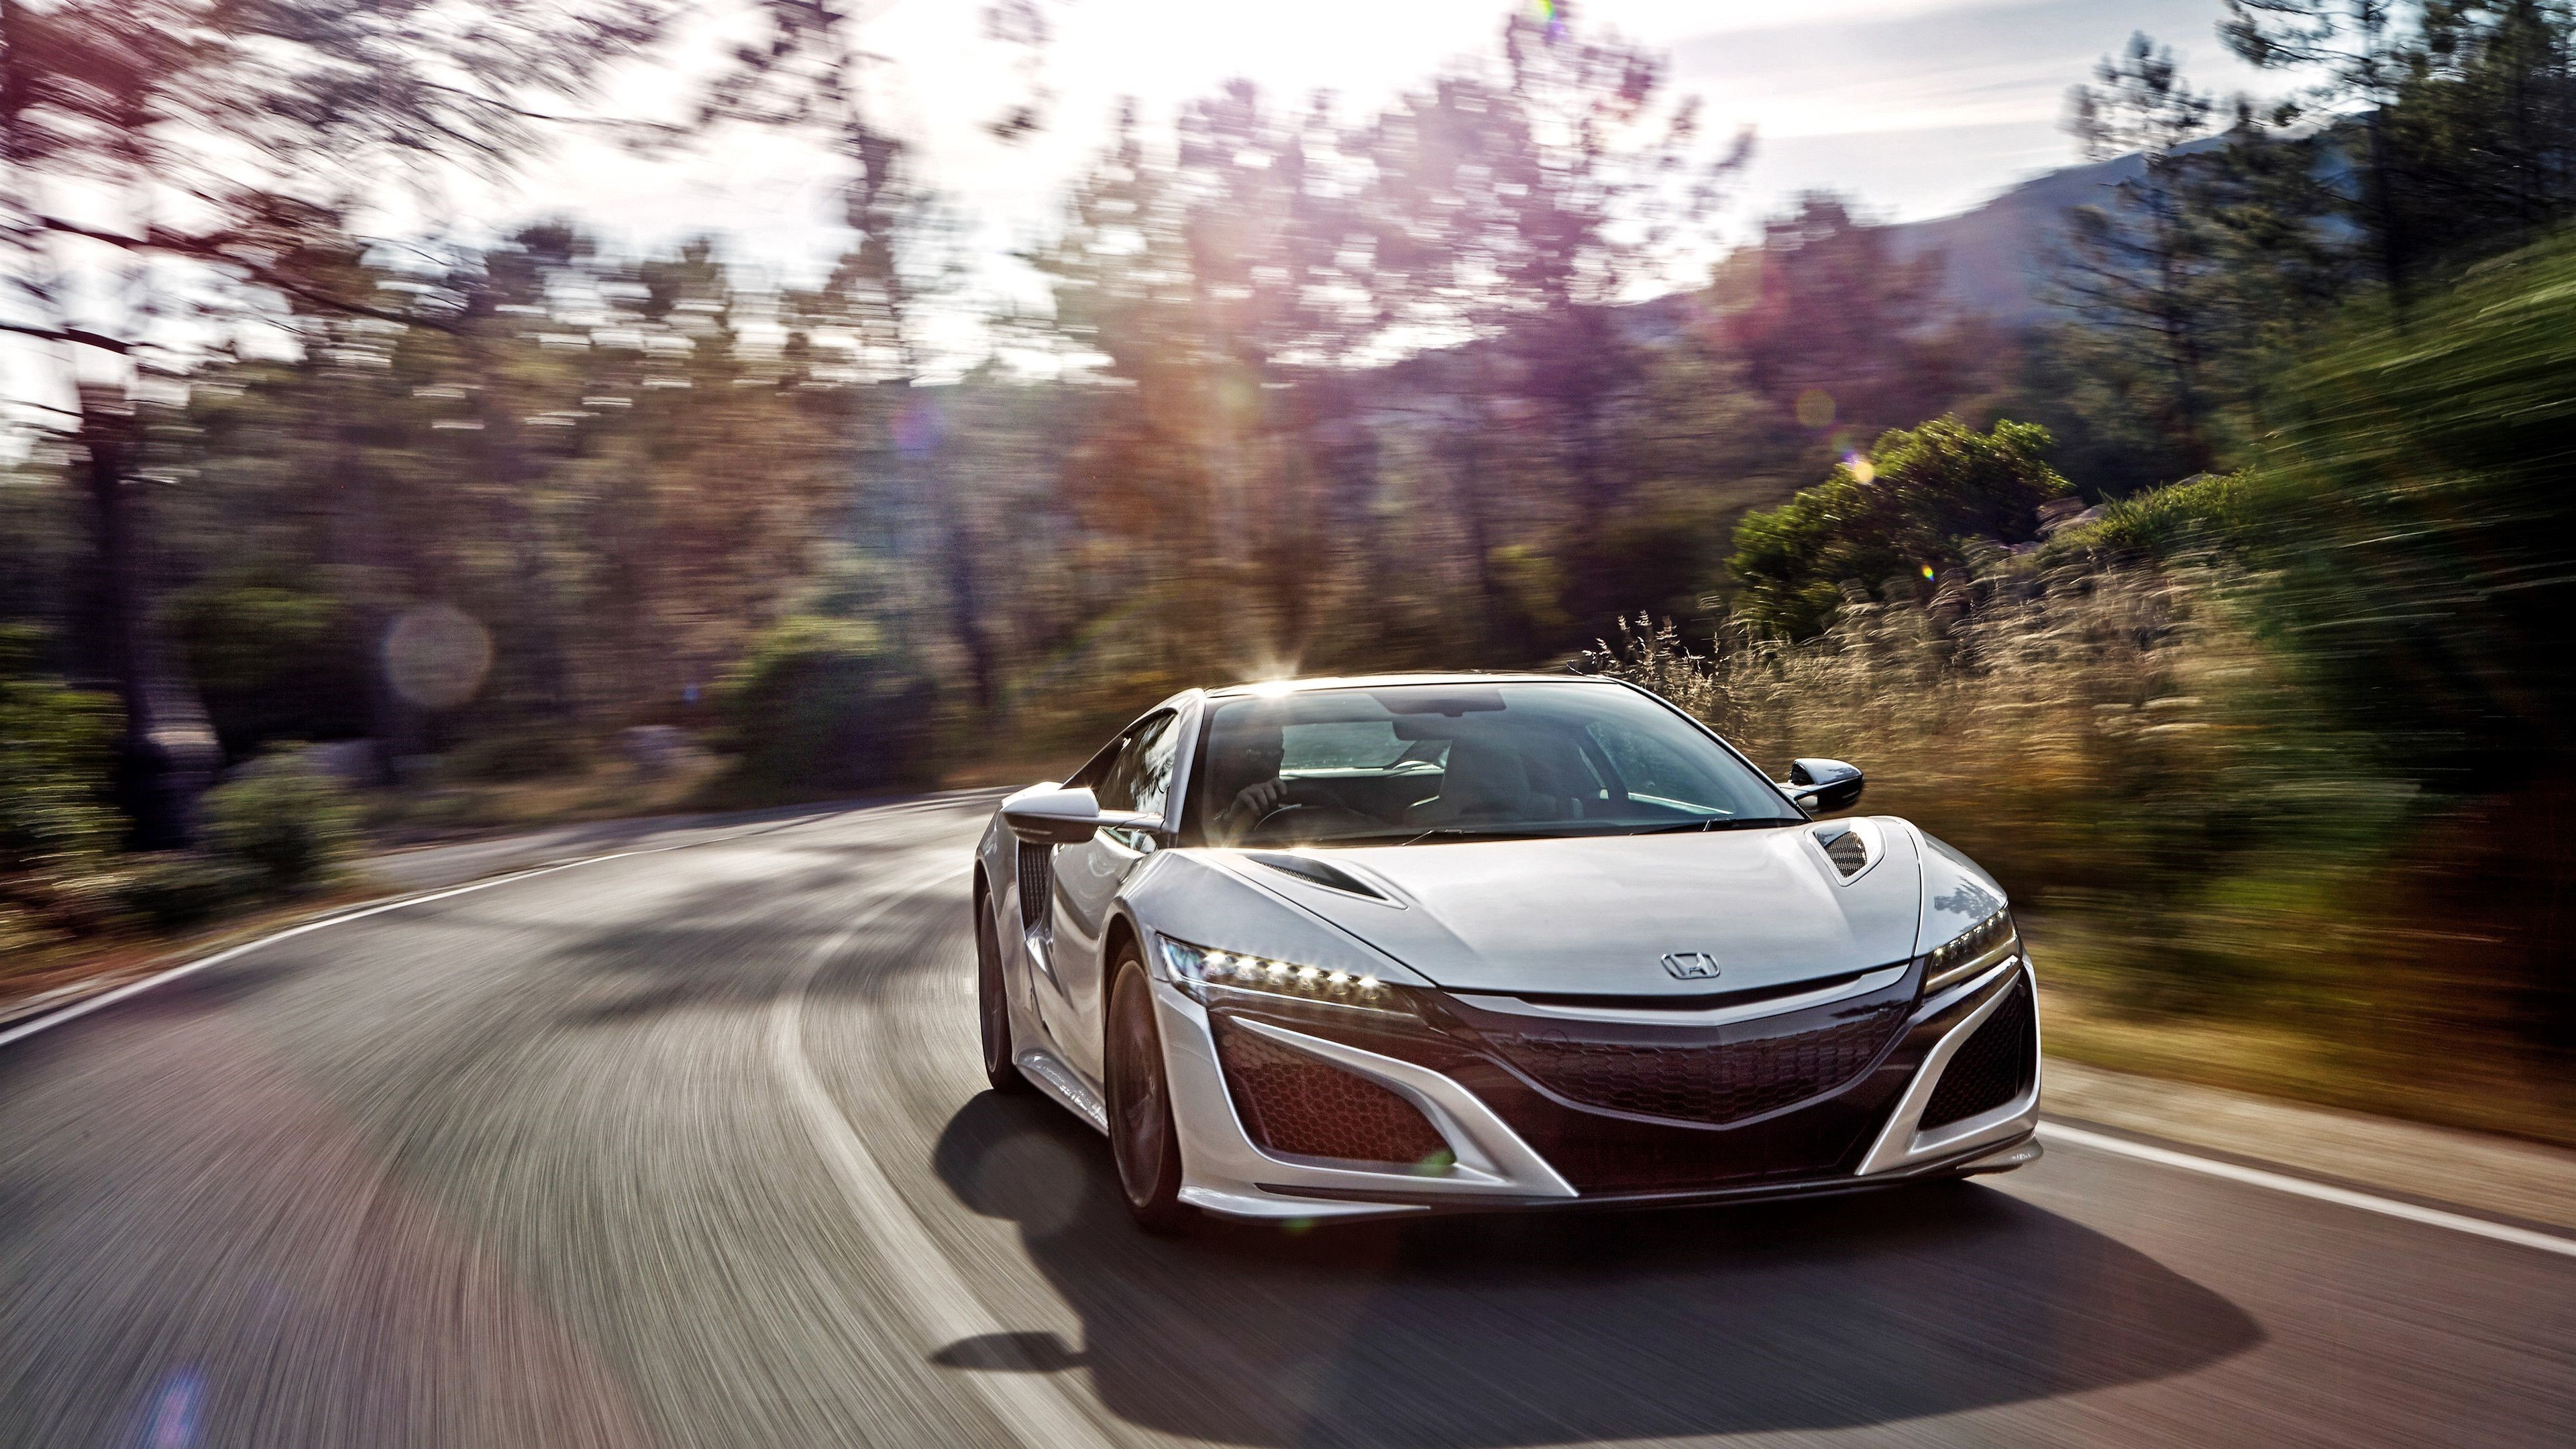 Acura NSX 1080p Wallpapers